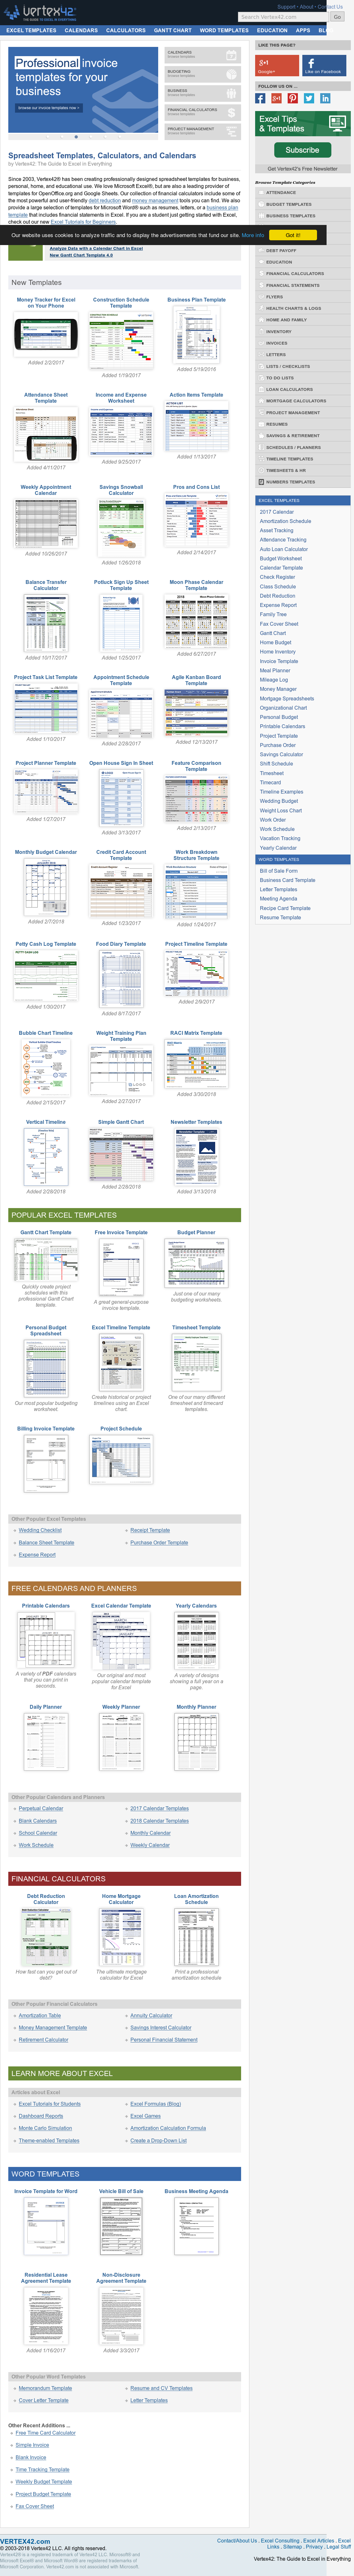 Owler Reports   Vertex42 Blog Gantt Charts Made Easy   New Version 4.0 With Gantt Chart Template Pro Vertex42 Download